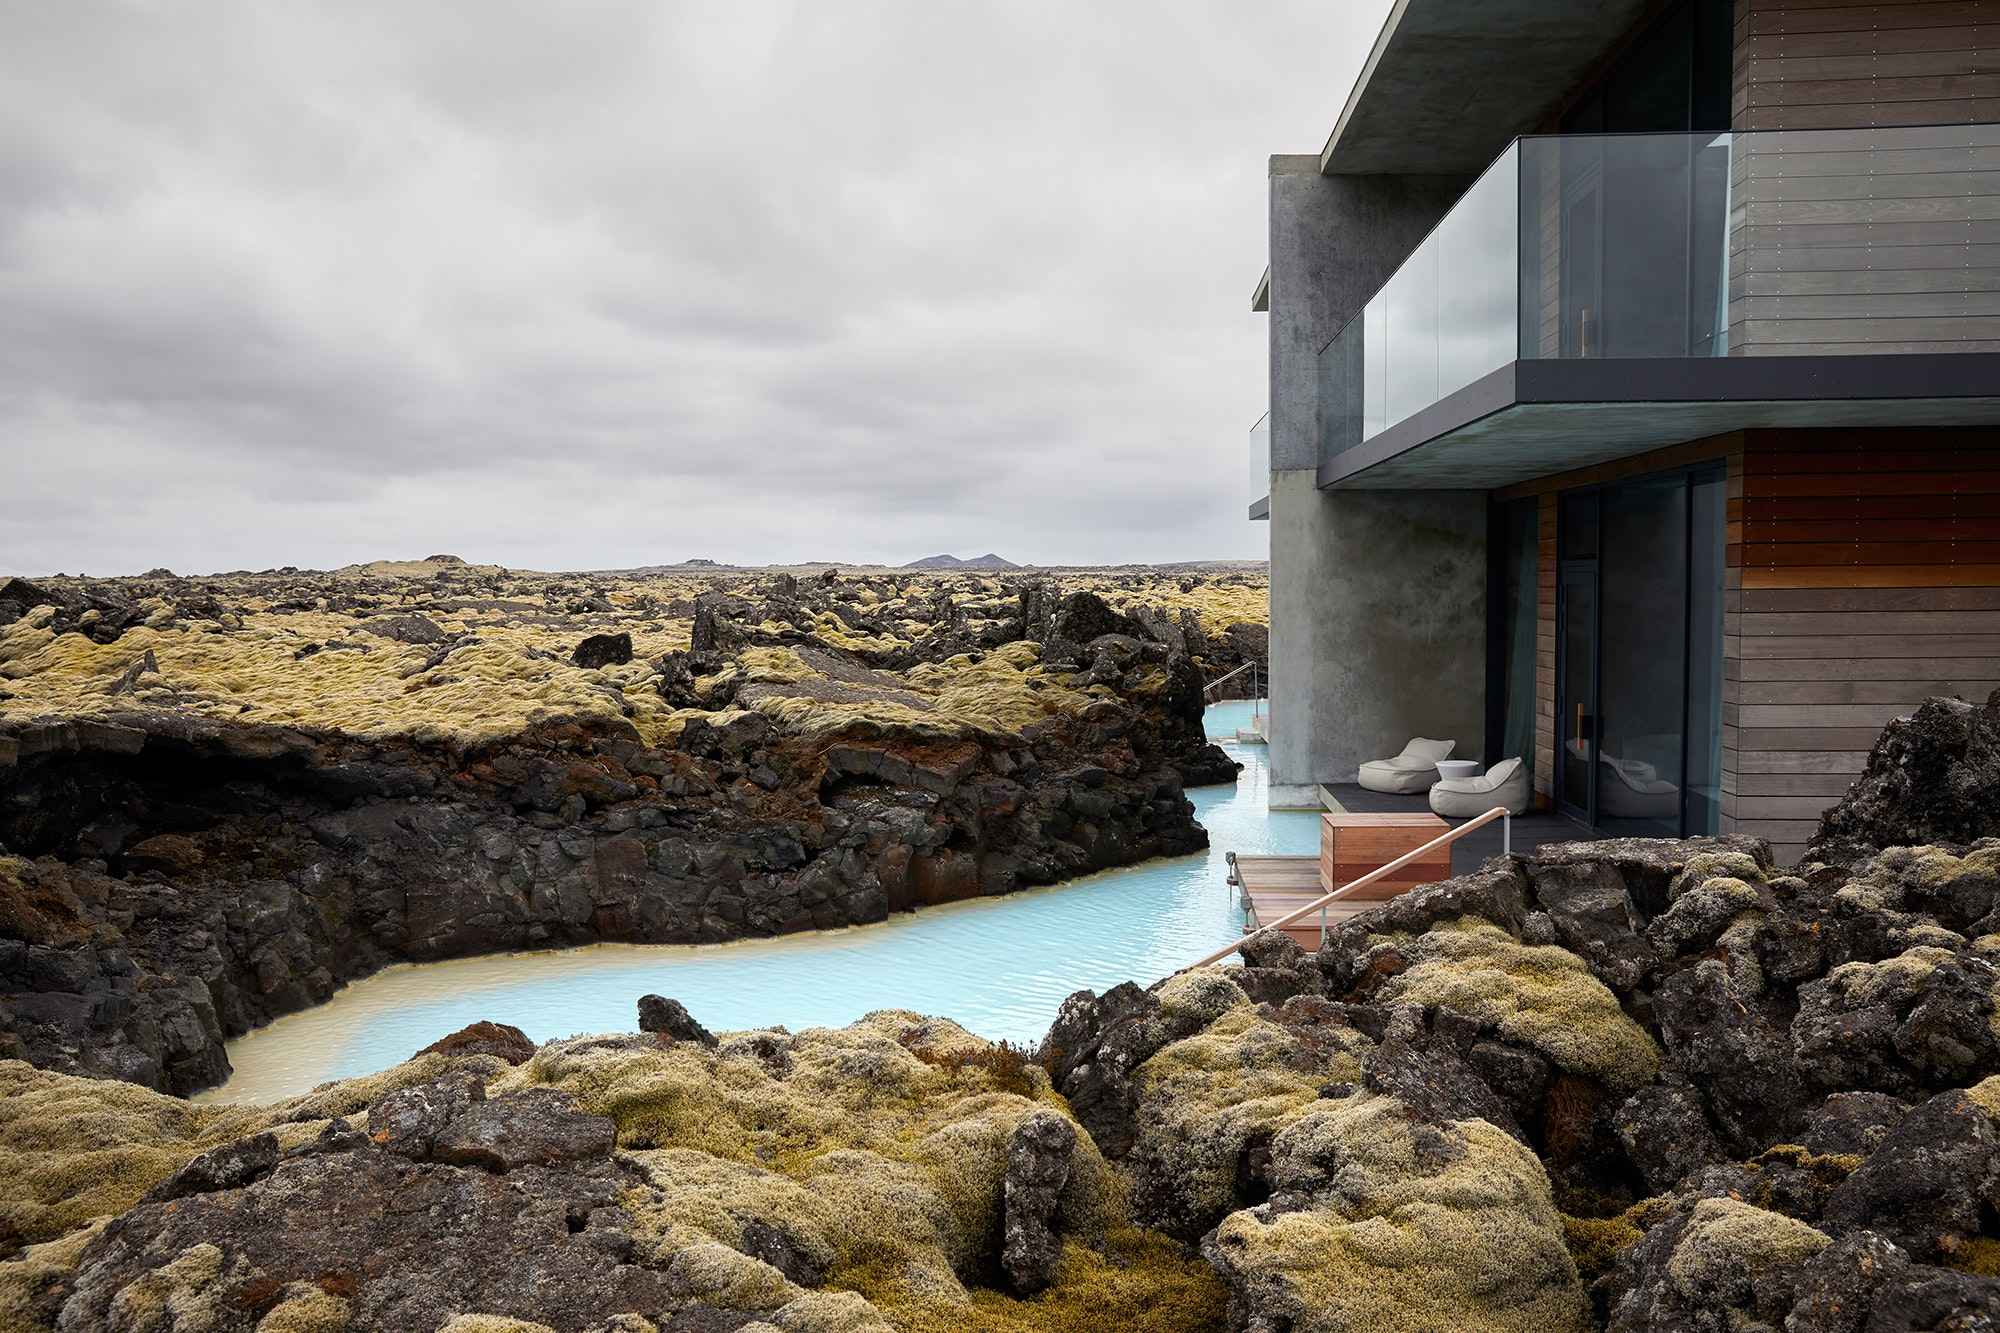 Some suites at The Retreat at the Blue Lagoon have their own private lagoons.